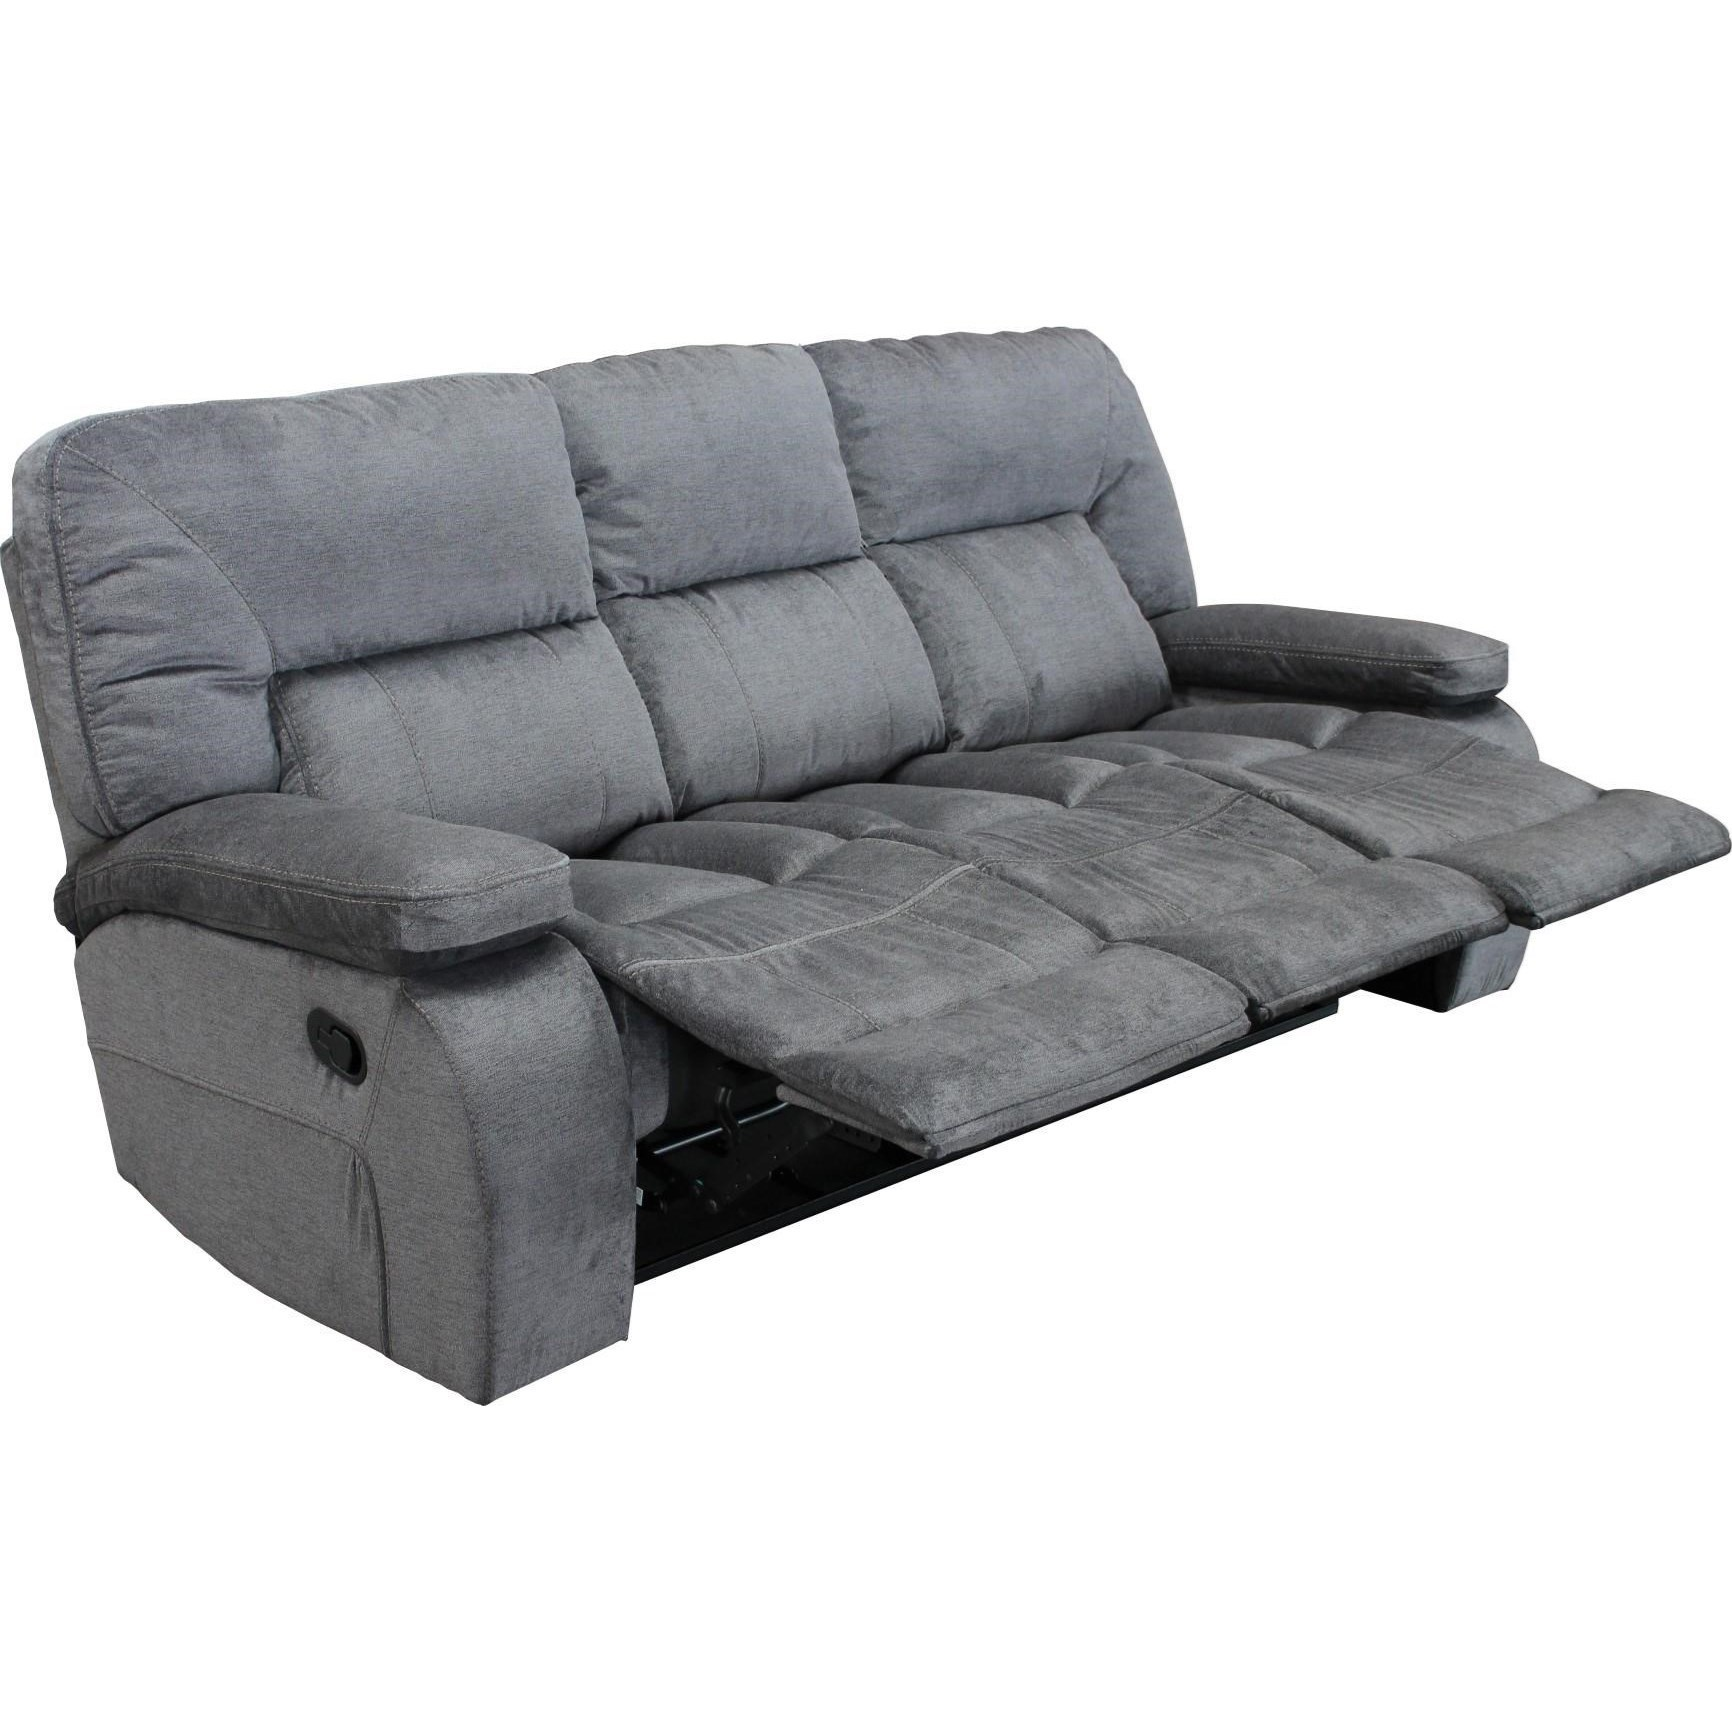 theo casual triple reclining sofa with pillow arms rotmans rh rotmans com triple recliner sofa leather triple reclining sofas fabric